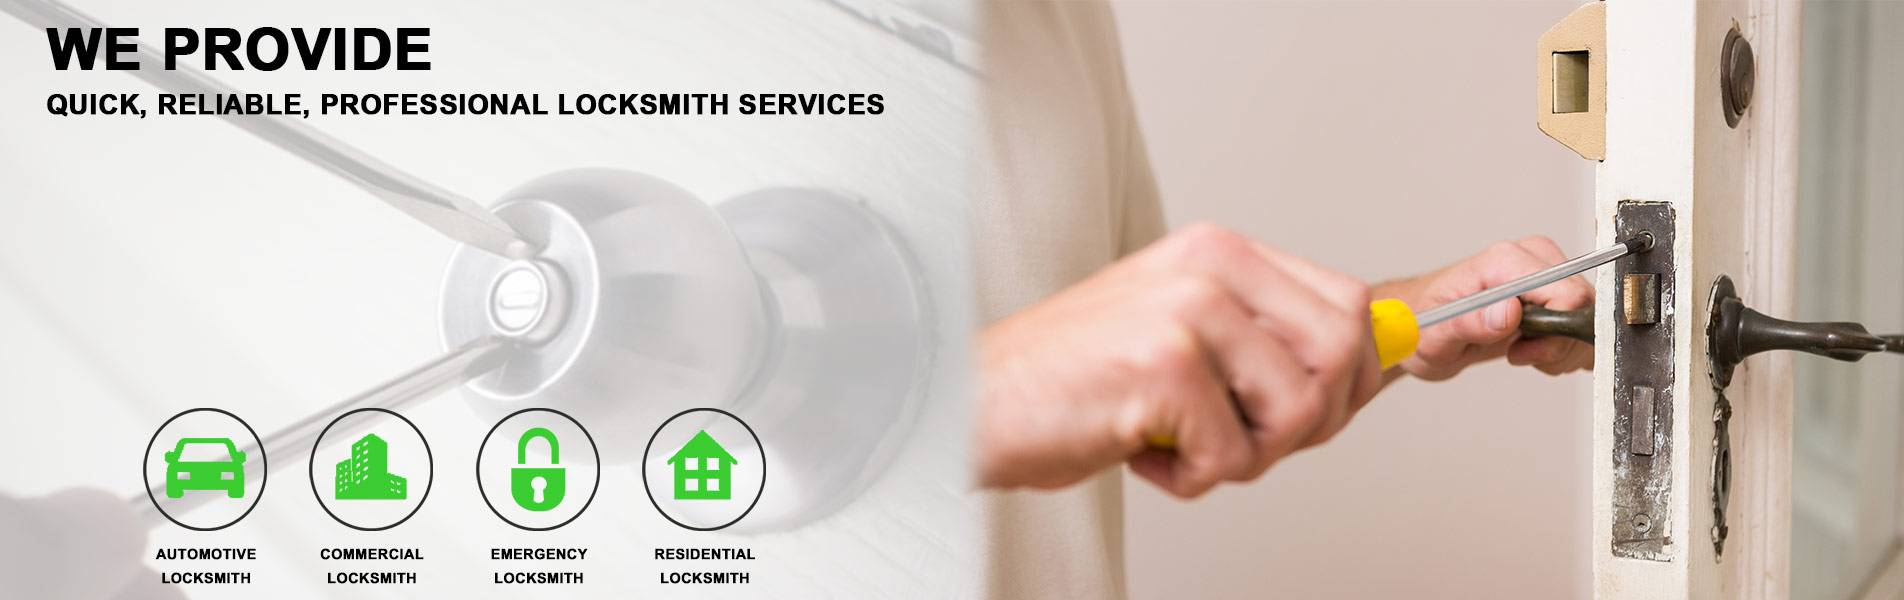 Expert Locksmith Services Philadelphia, PA 215-716-7243